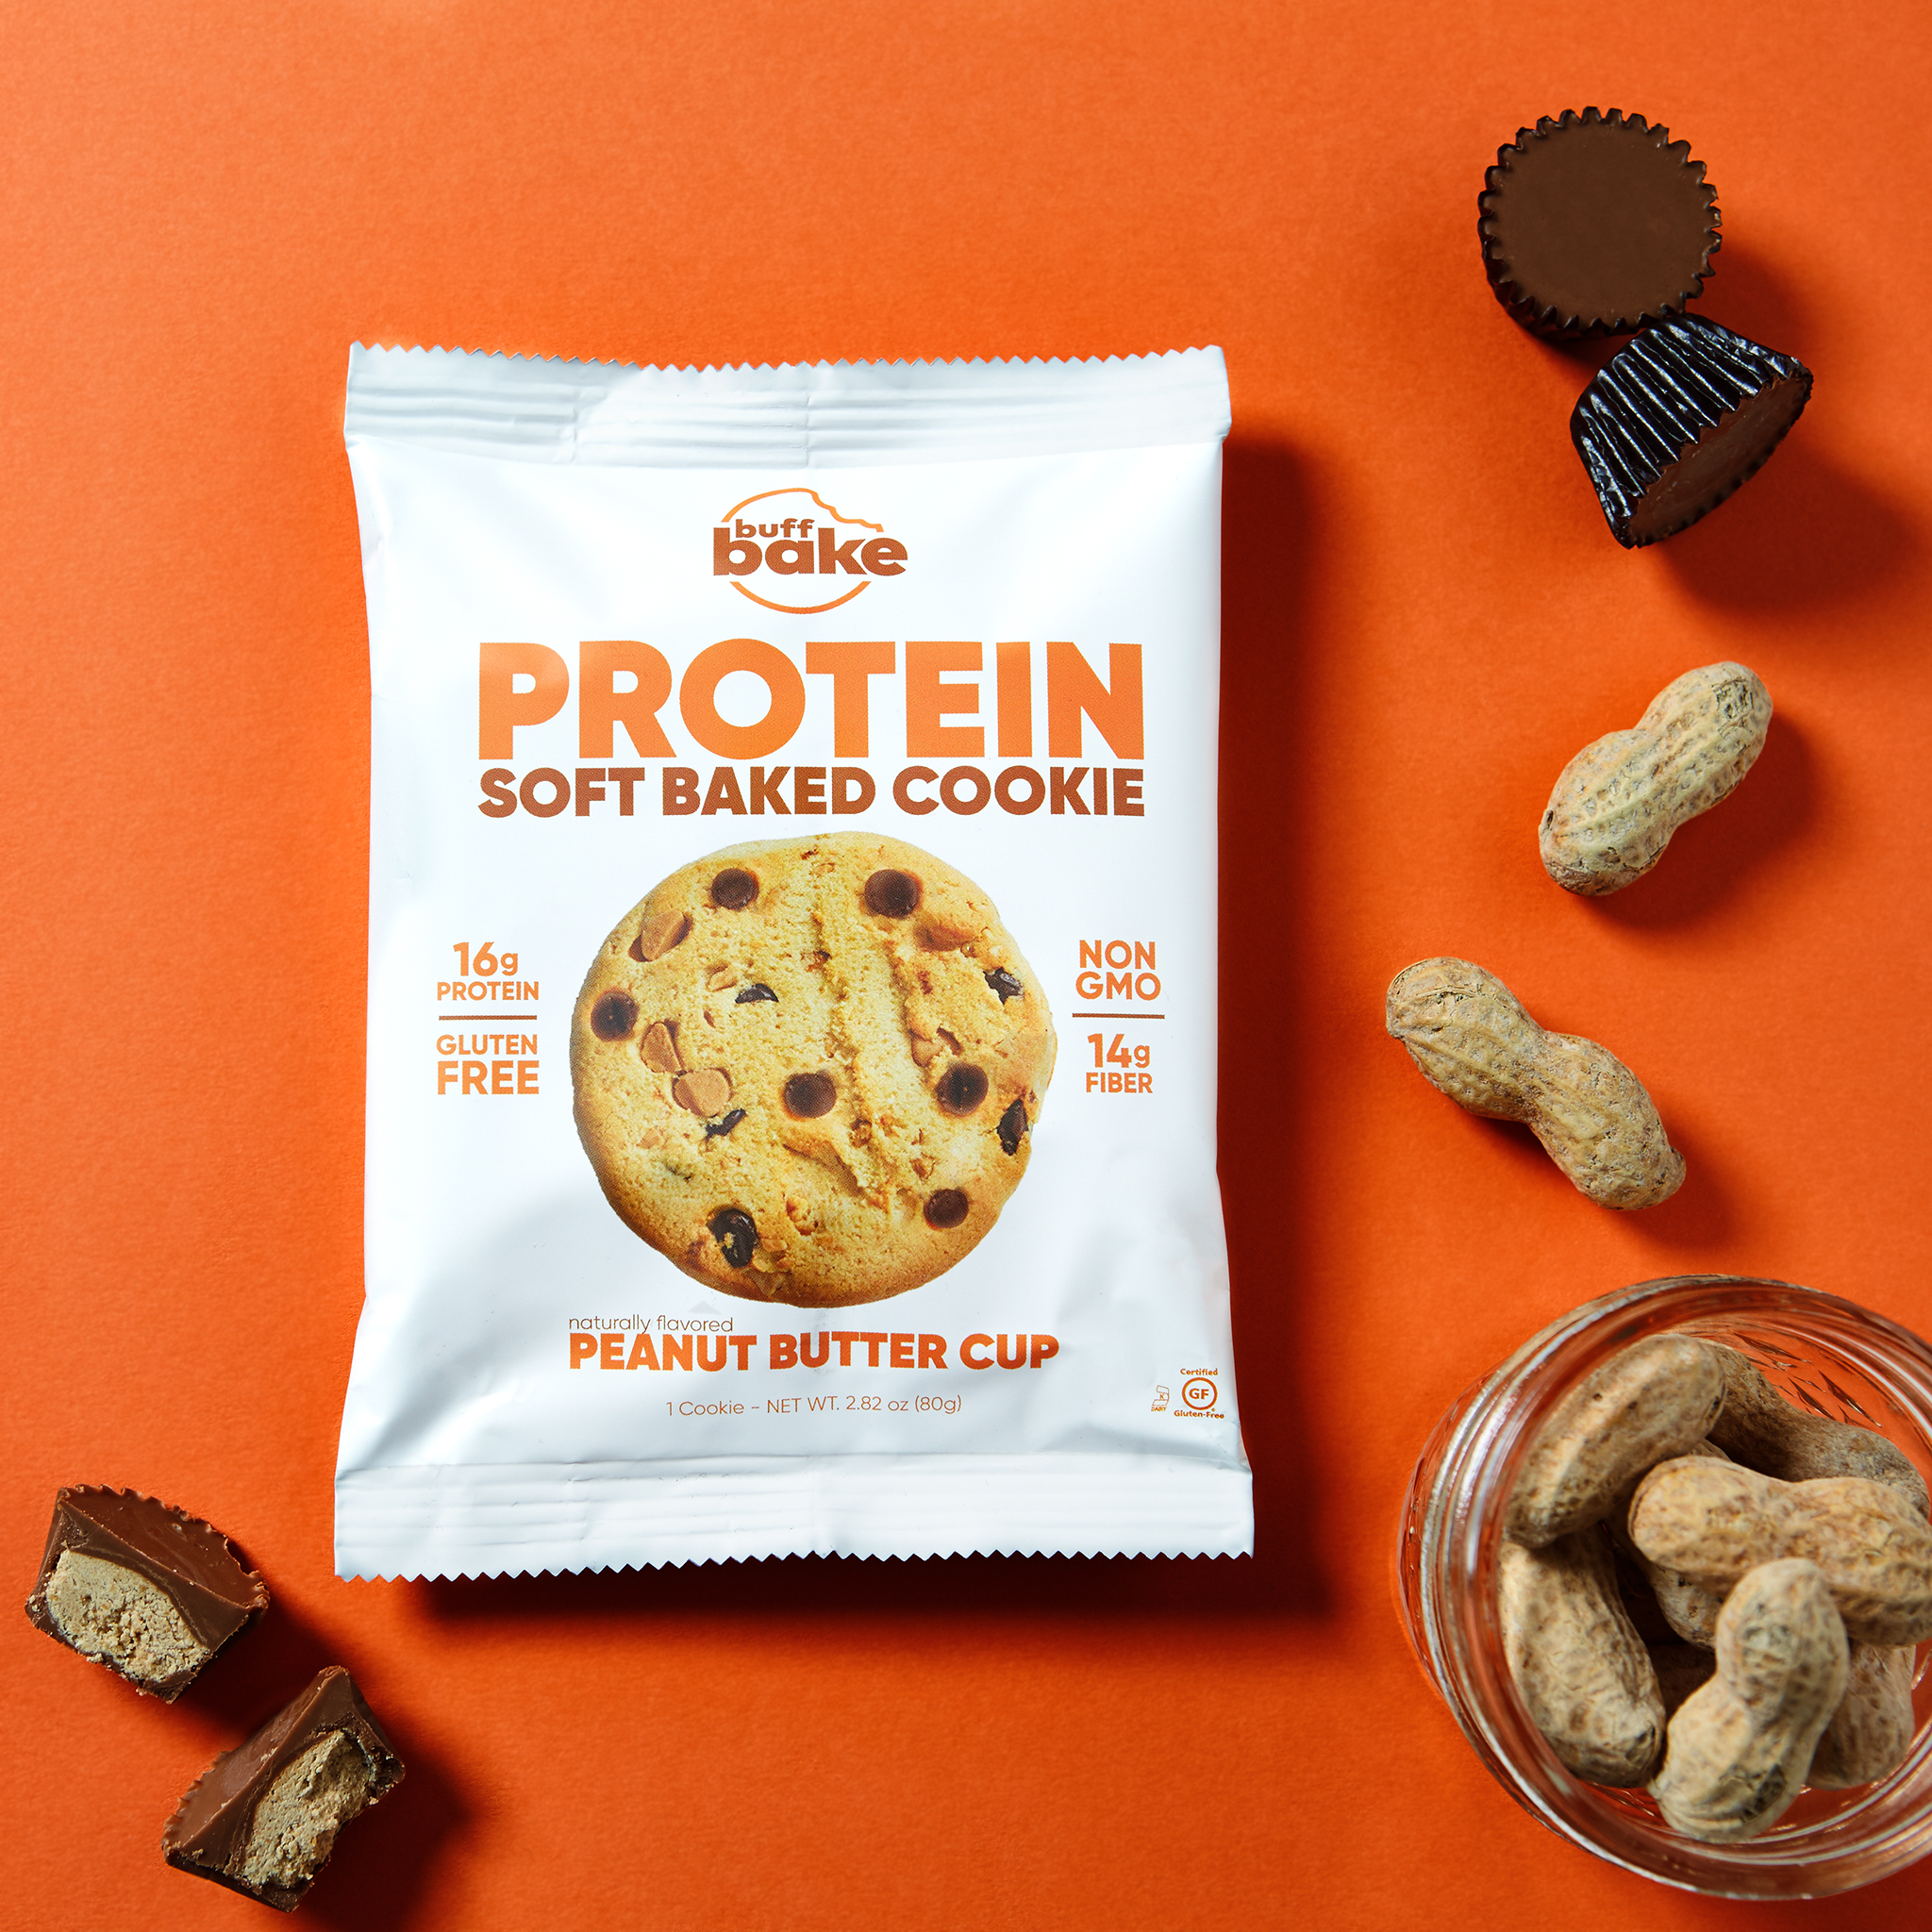 BUFF BAKE TAKES COMPANY VISION TO NEXT LEVEL, FUELED BY A PRODUCT AND MARKETING REBRAND BUILT ON SIMPLICITY